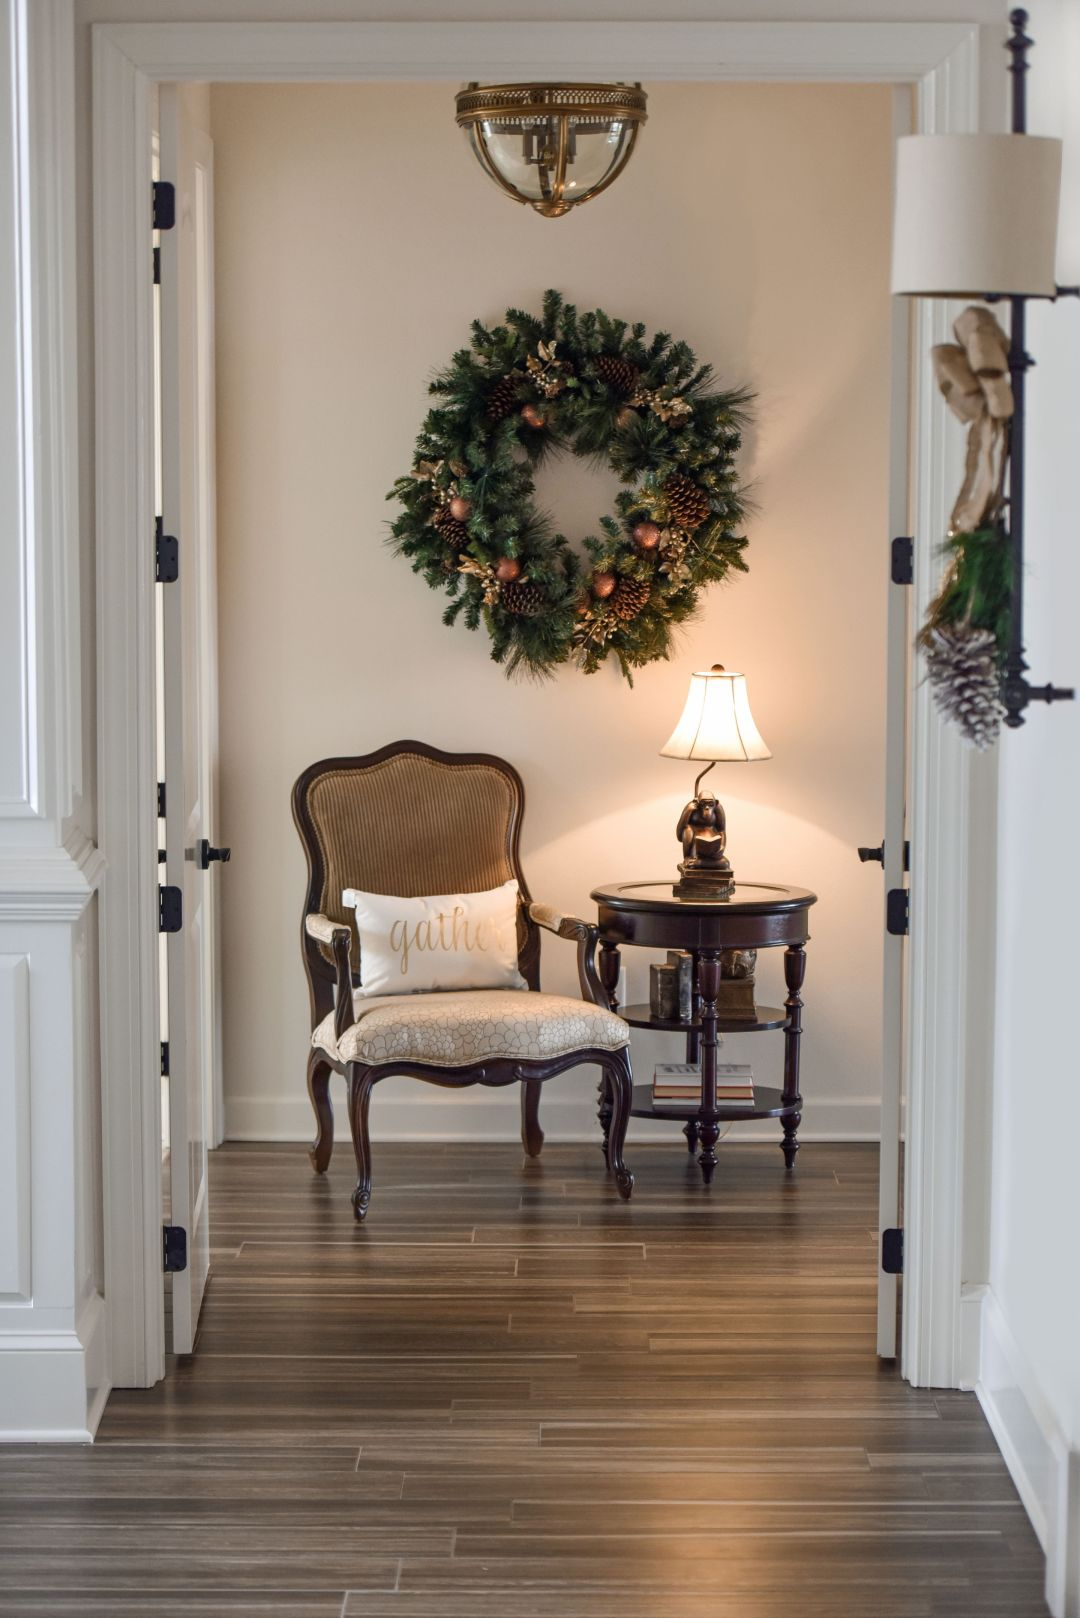 rp39-edit-final-2 Holiday  Entertaining Tips from Black Southern Belle Tastemakers